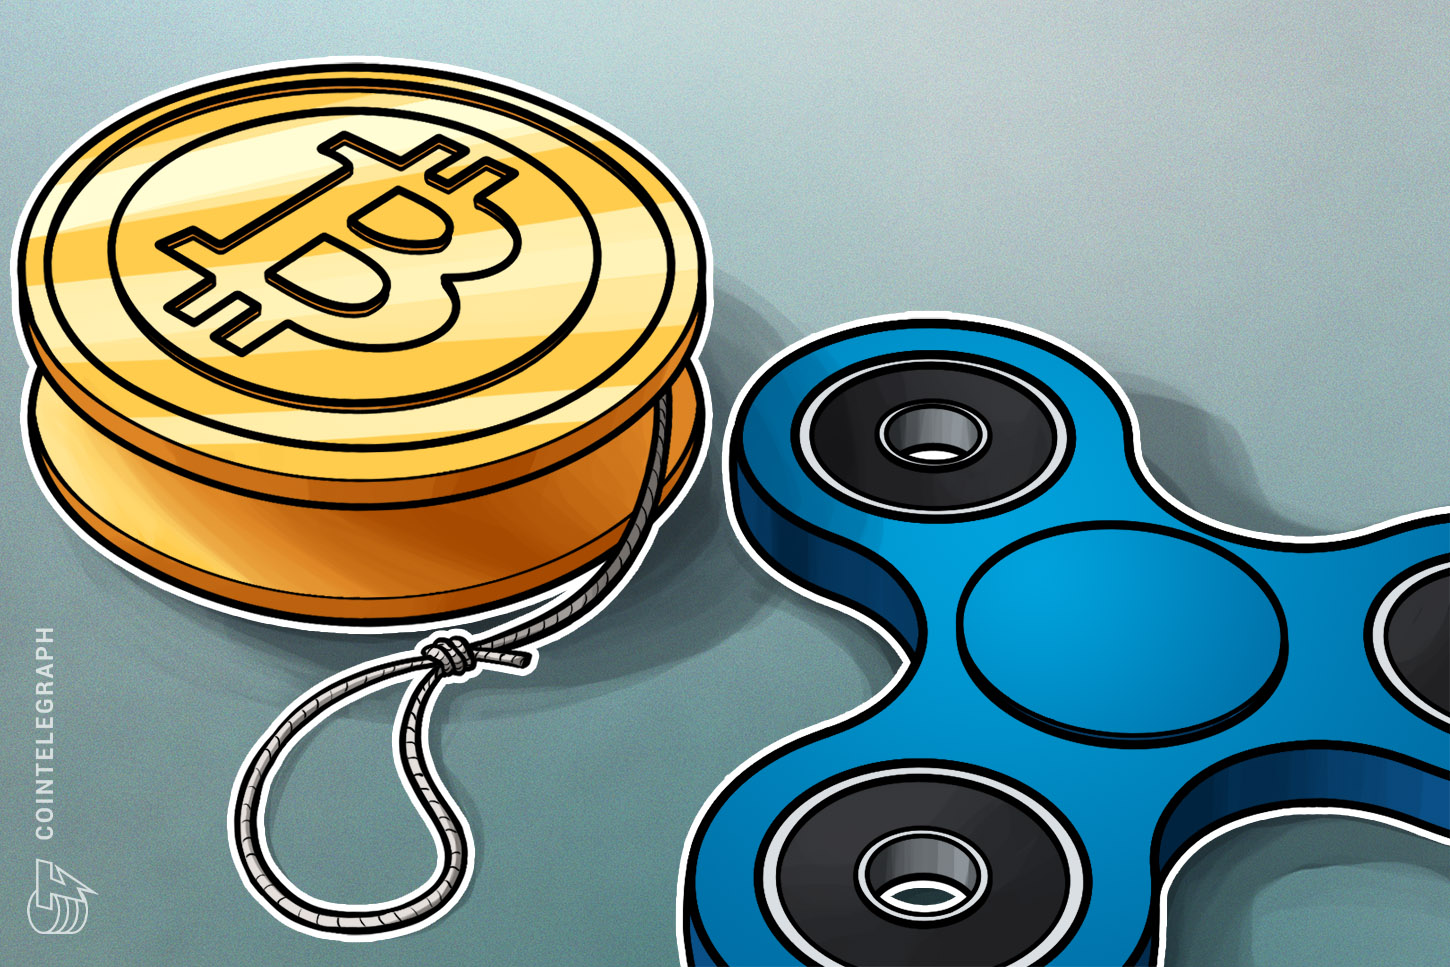 Ripple Vs. Bitcoin: Key Differences